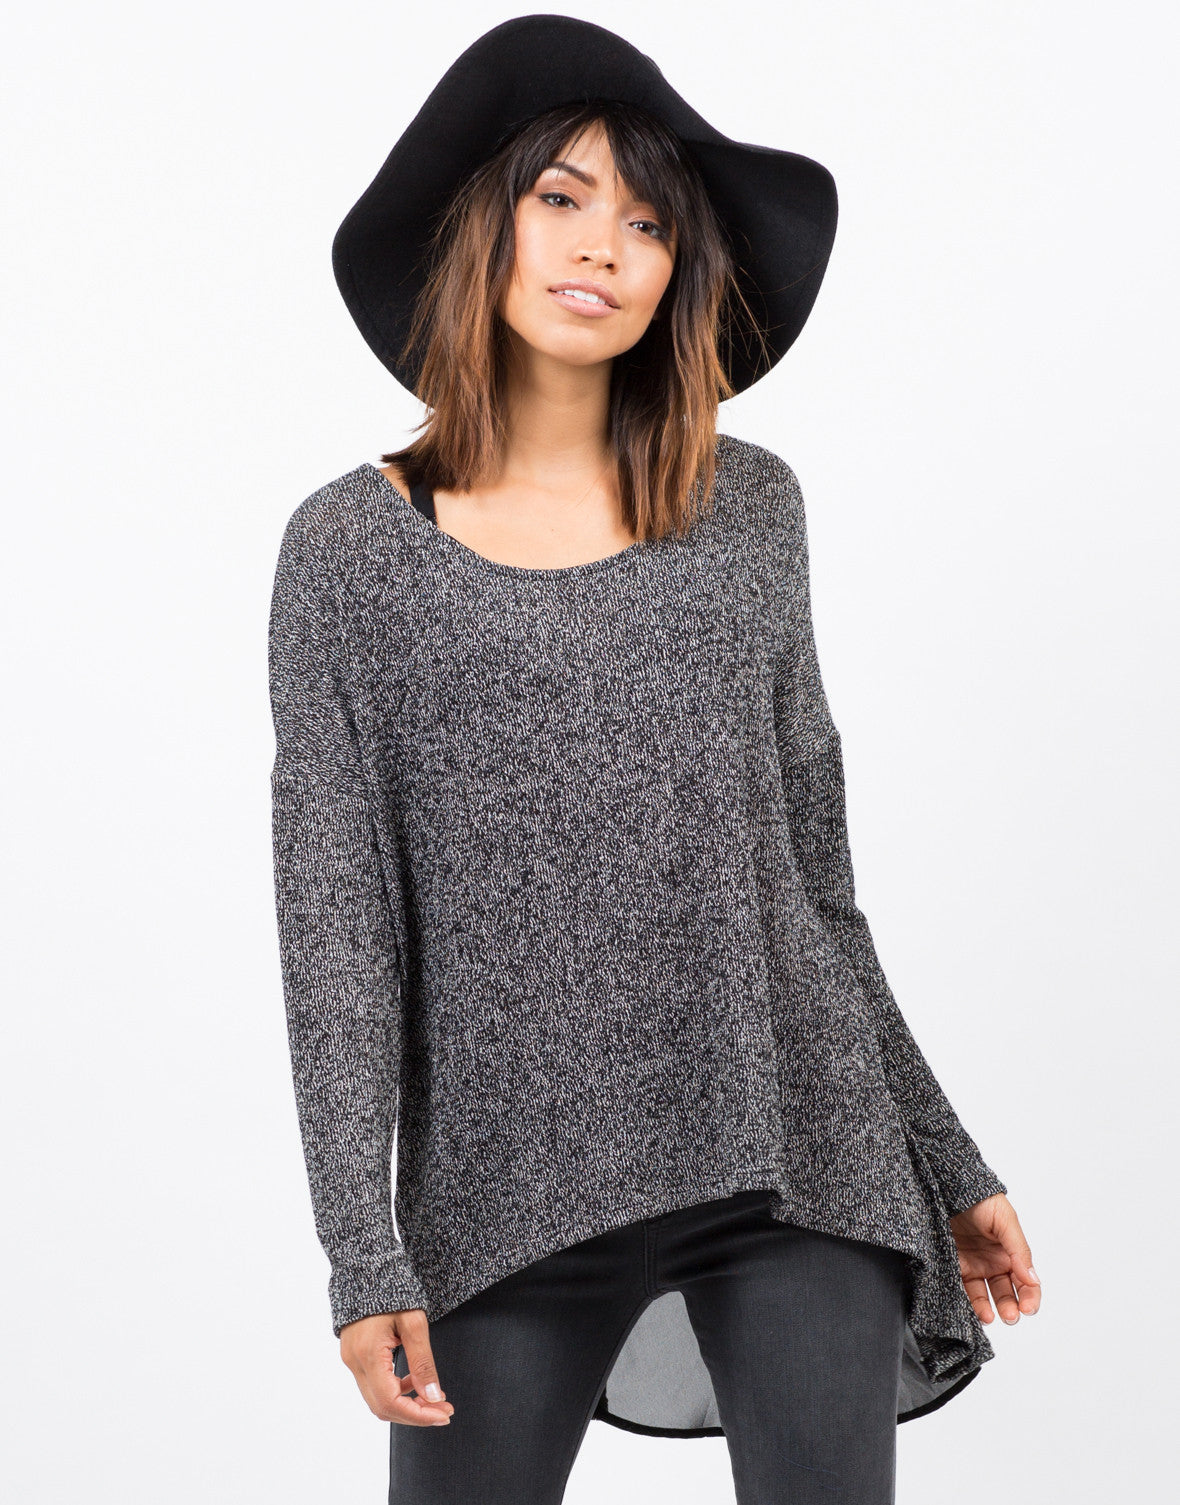 Front View of Sweater Chiffon Top